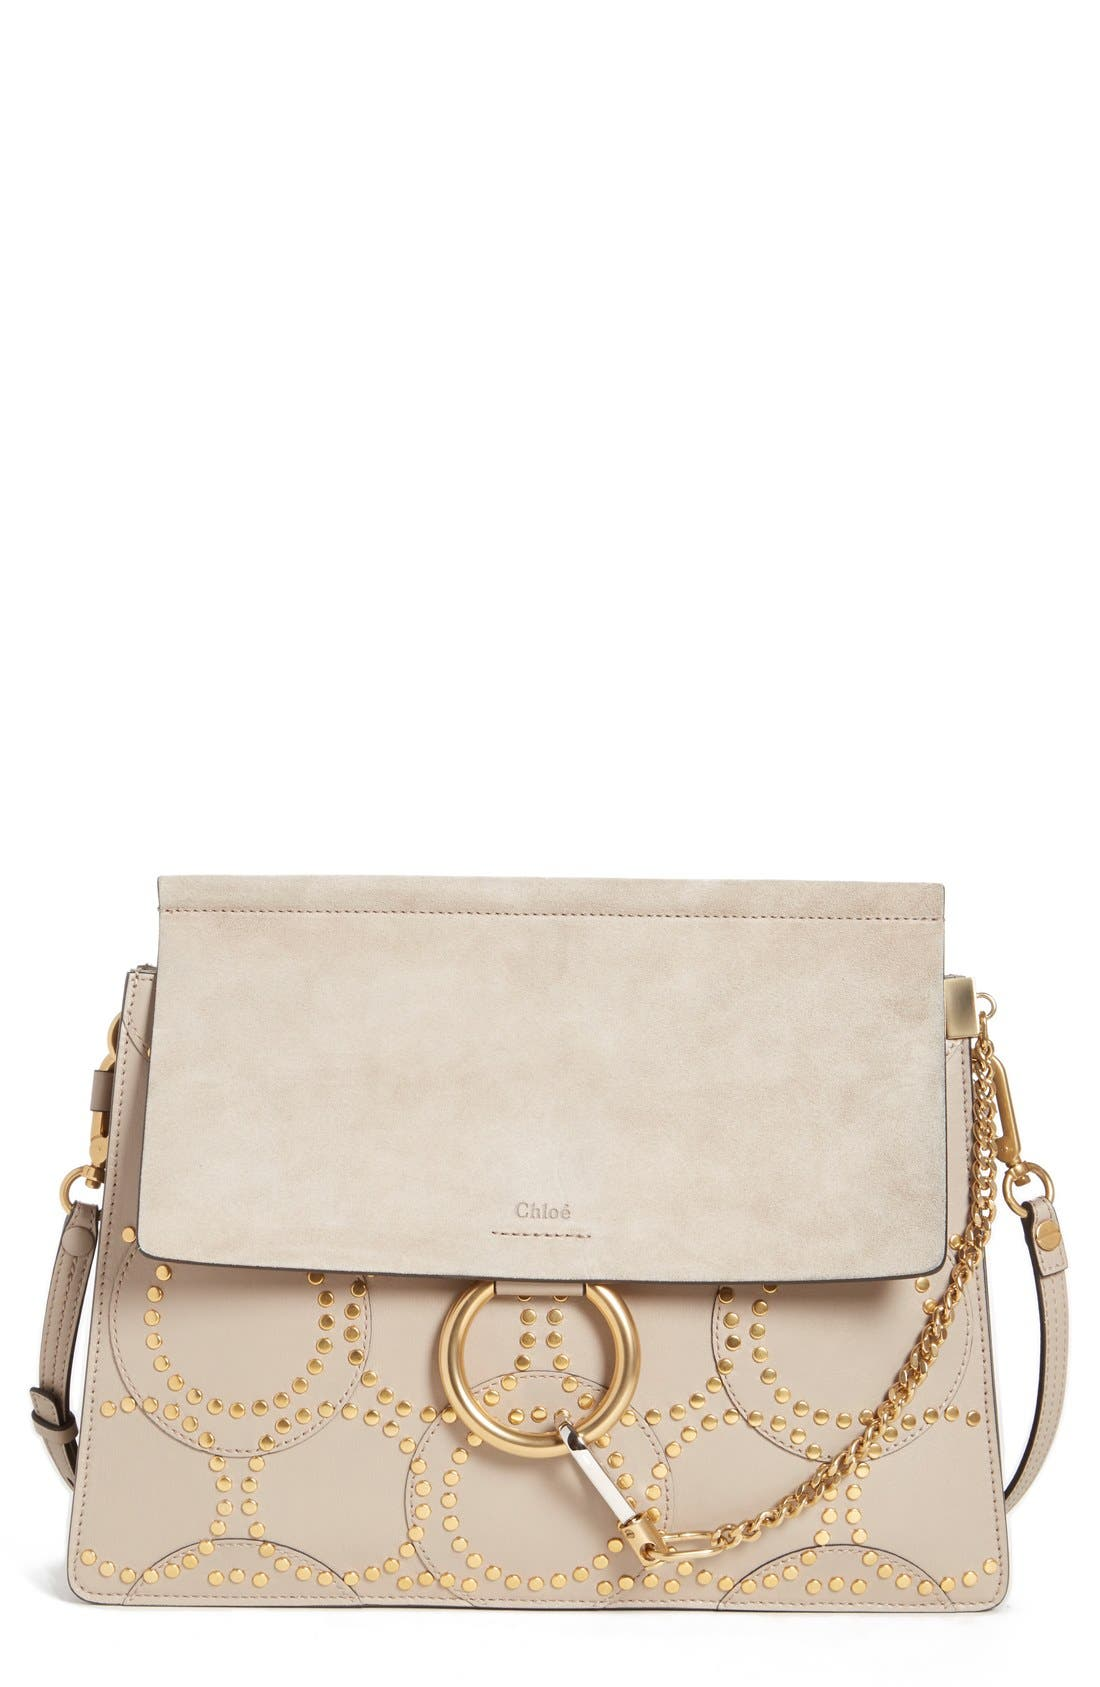 CHLOÉ 'Faye' Studded Calfskin Shoulder Bag